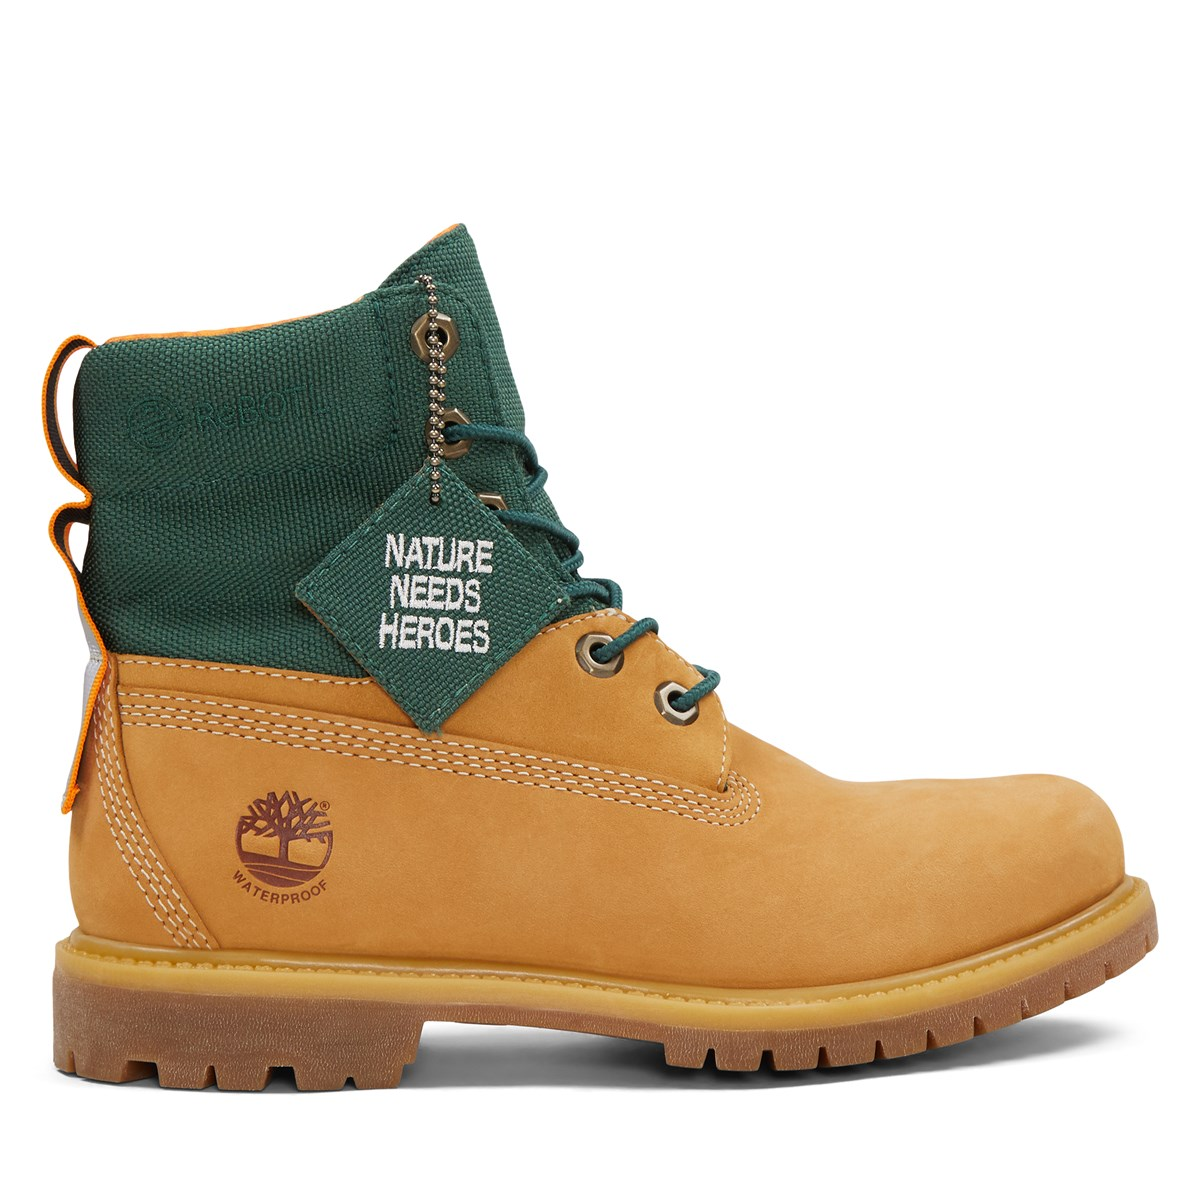 ms-timberlands-colored-boots-are-as-low-as-55-percent-off-2020-11-22